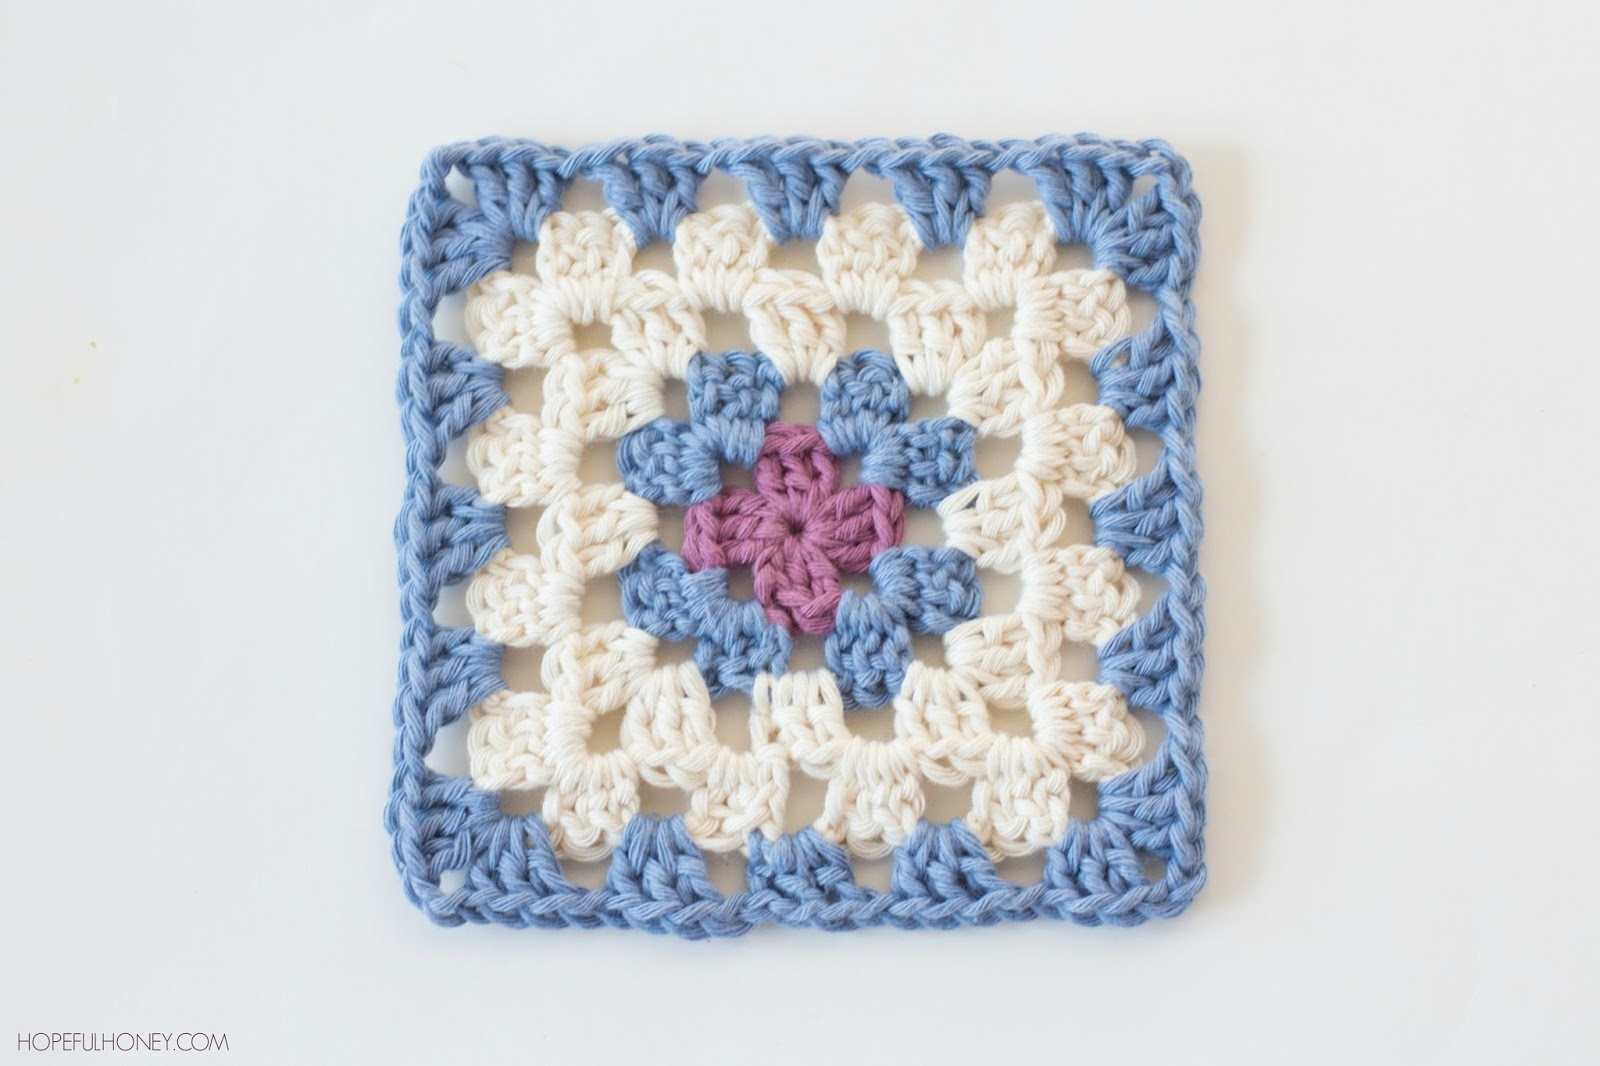 Crochet Granny Square : ... Craft, Crochet, Create: Classic Granny Square - Free Crochet Pattern